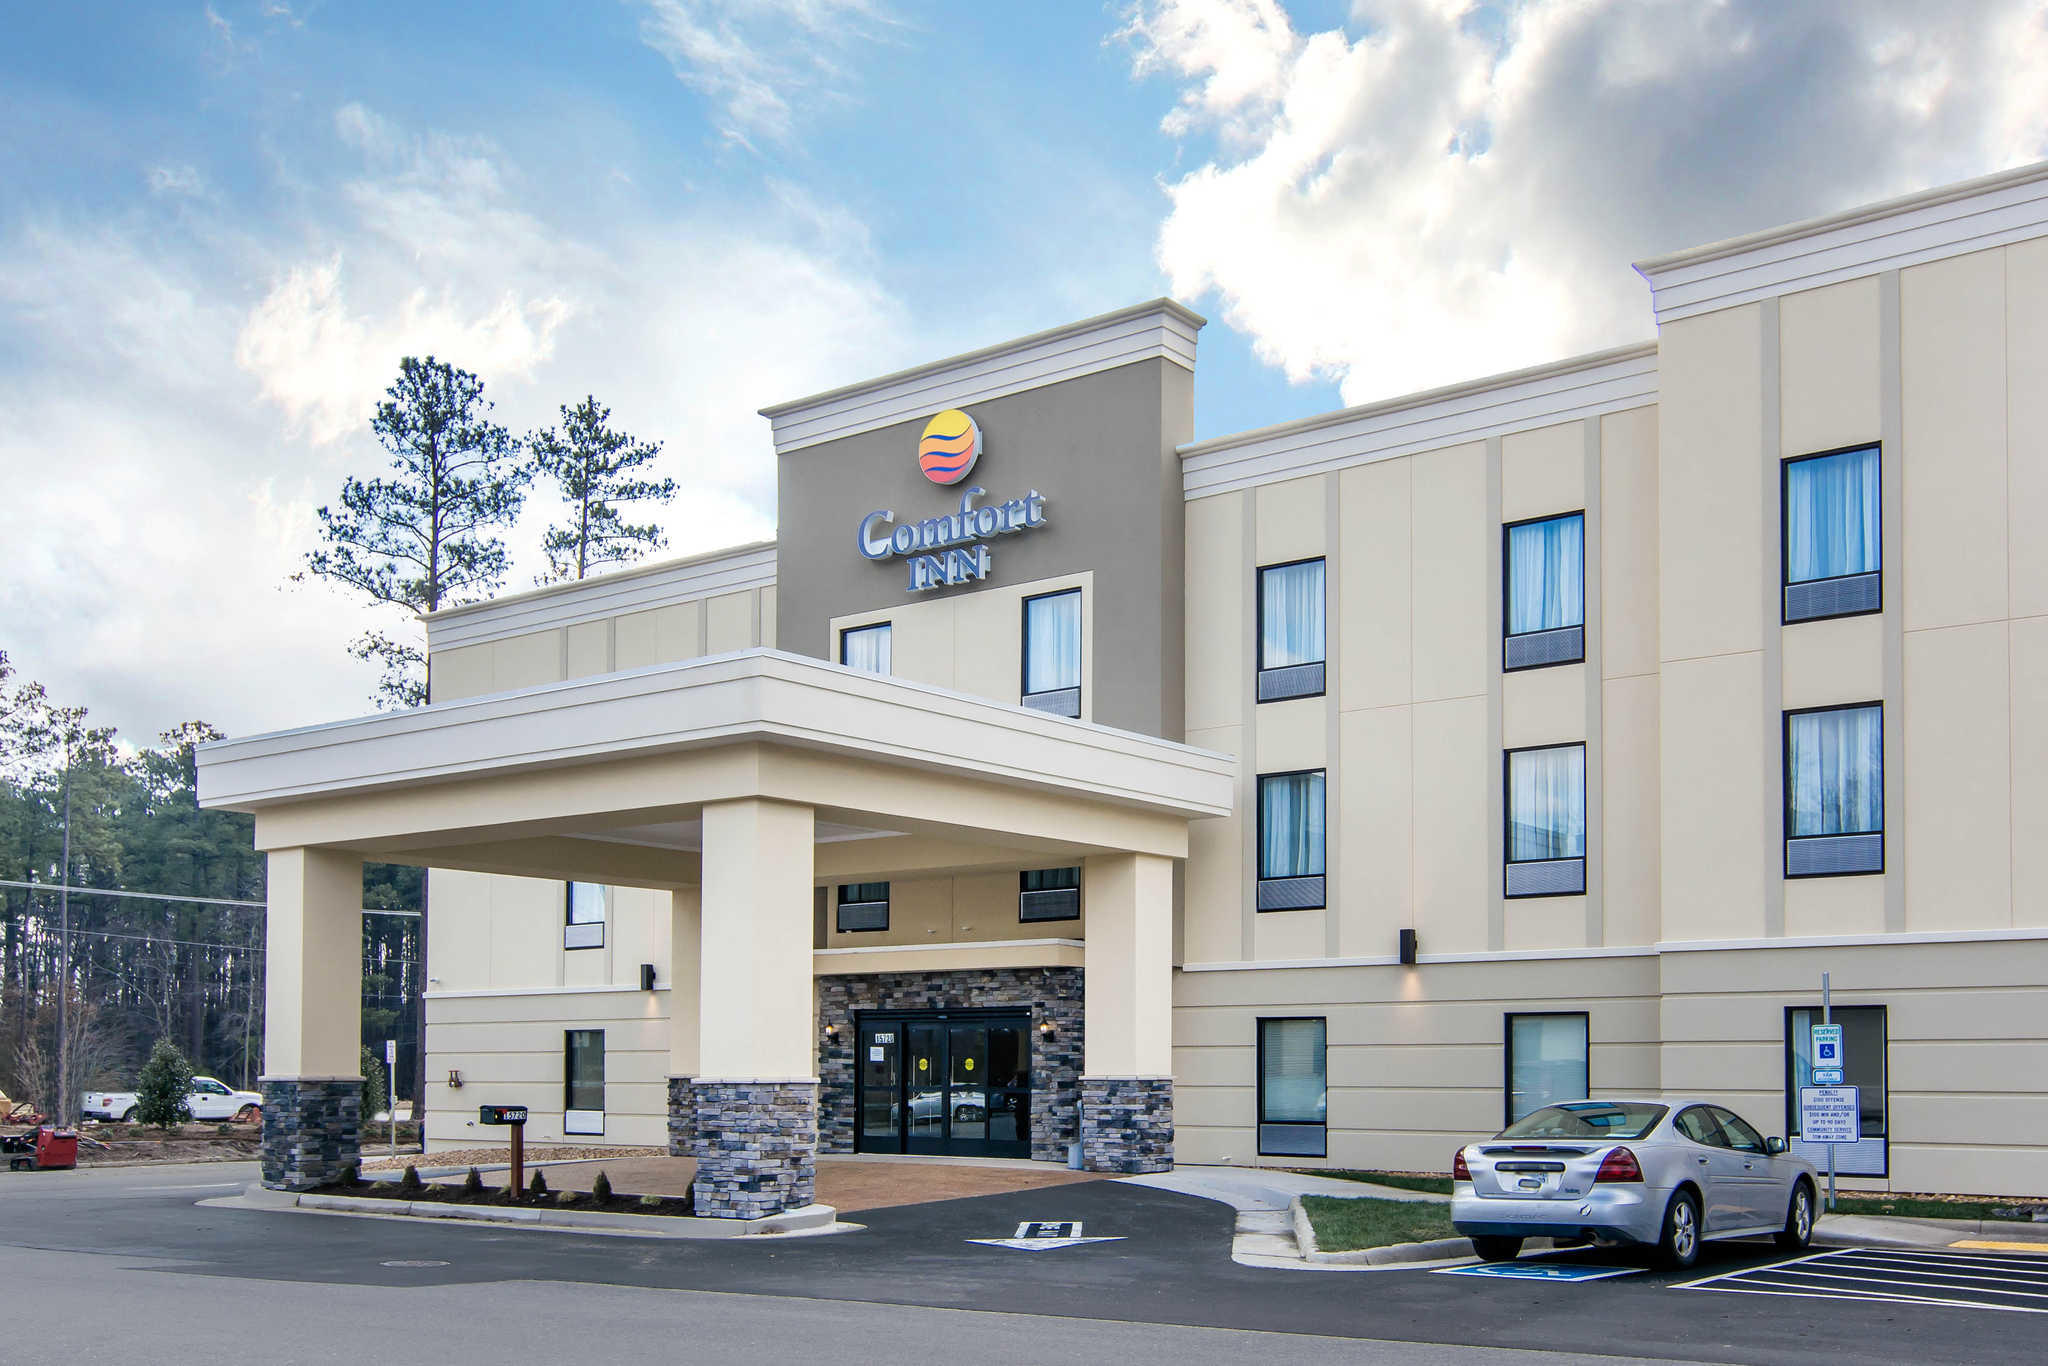 Comfort Inn South Chesterfield - Colonial Heights image 0